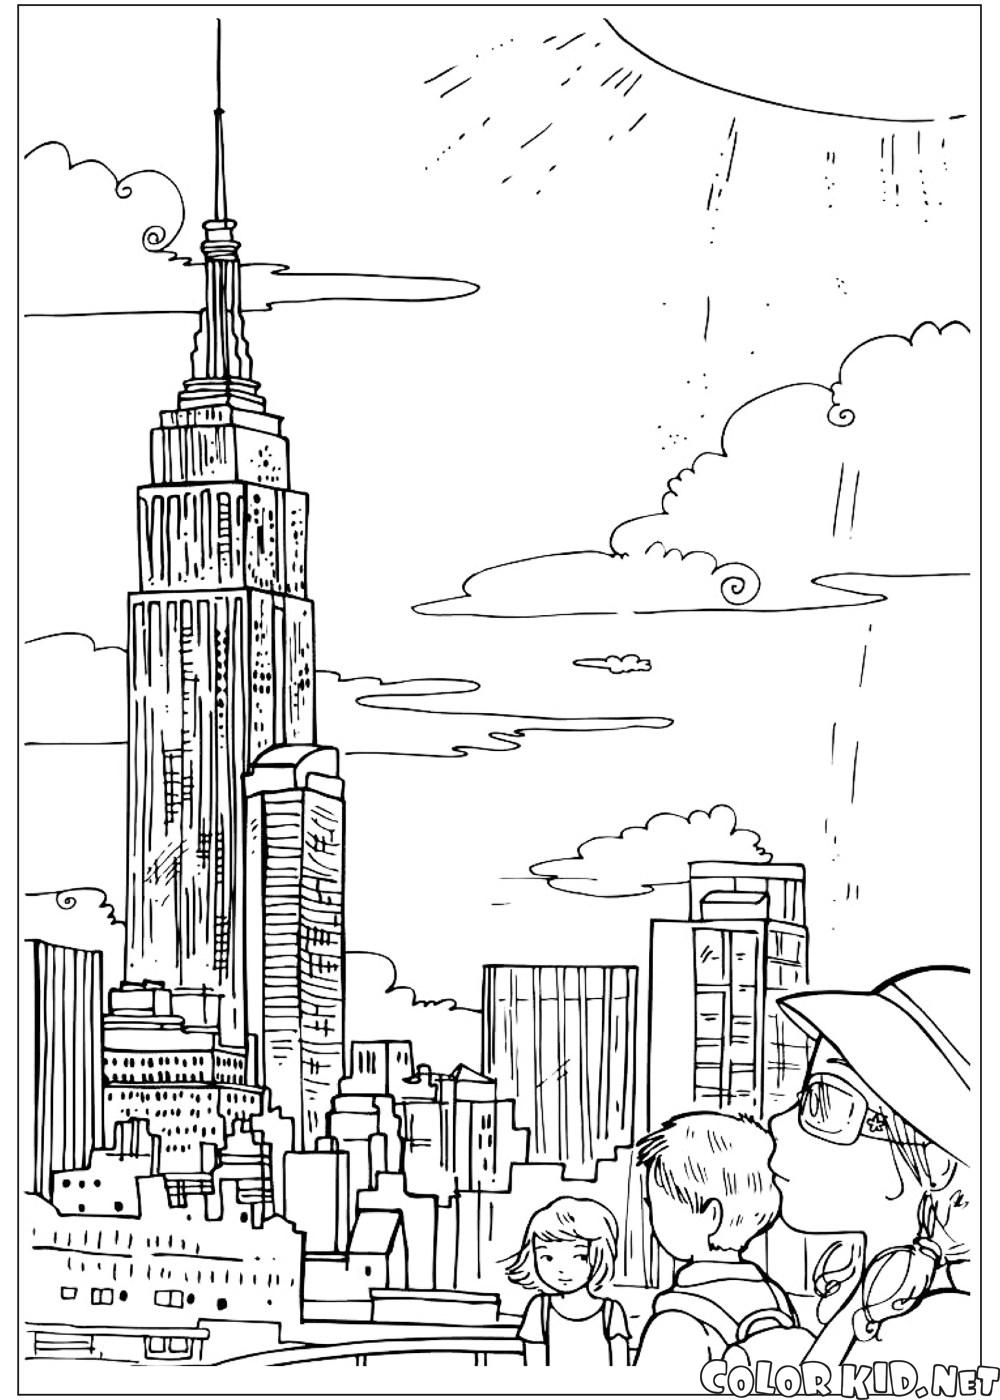 Coloring page - Empire State Building